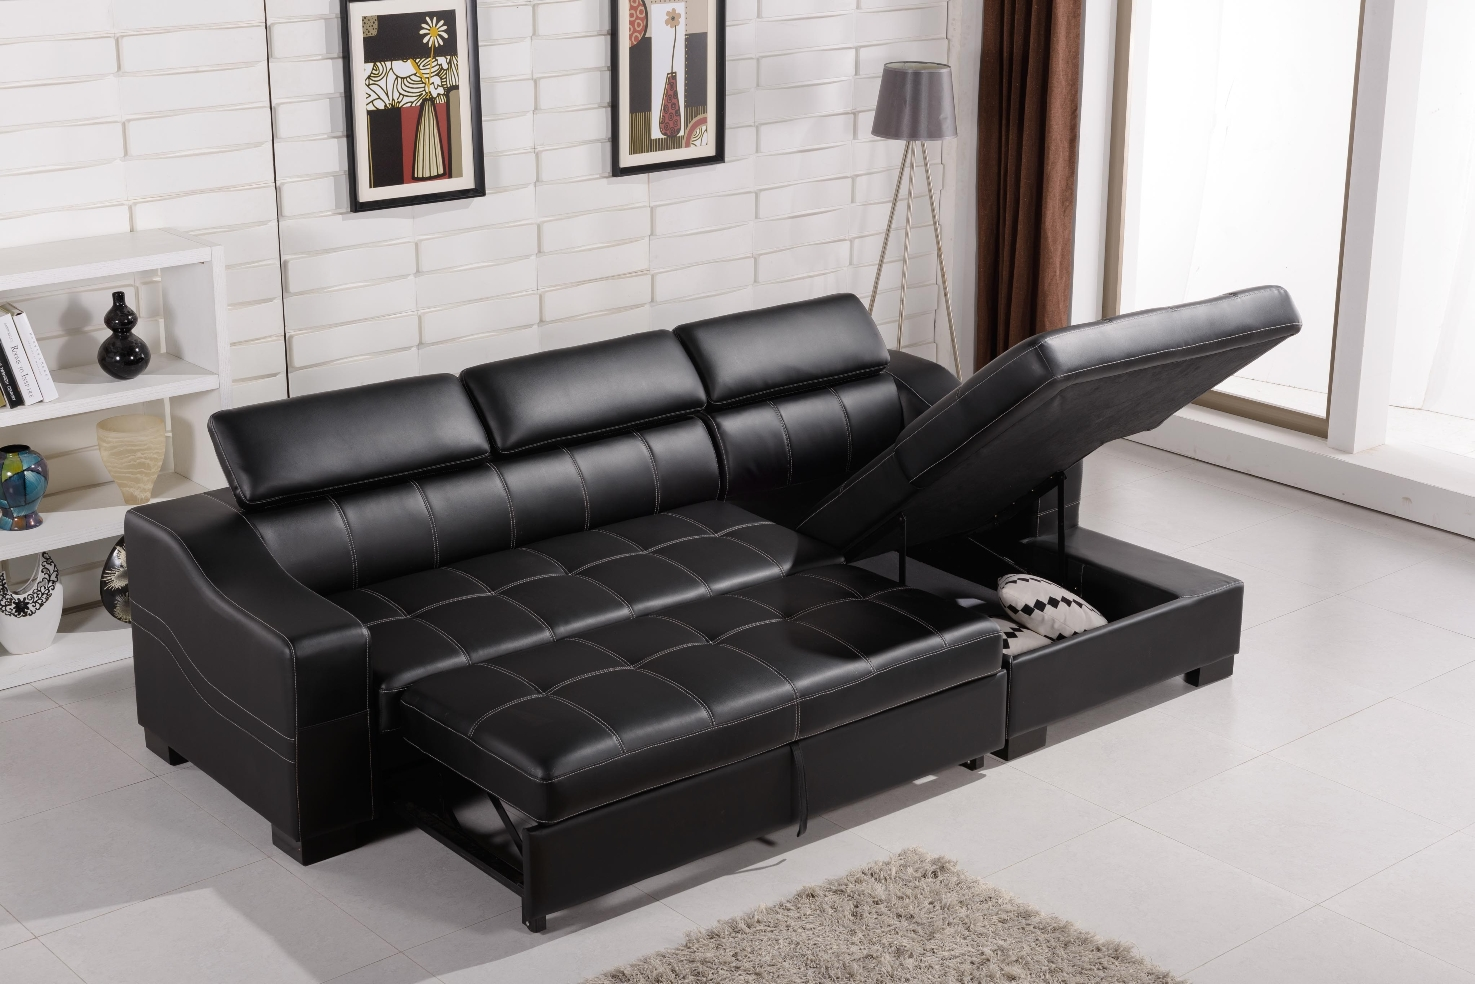 Chesterfield Sofas Melbourne Tips To Consider When Buying A Sleeper Sofa - Sleeper Sofa